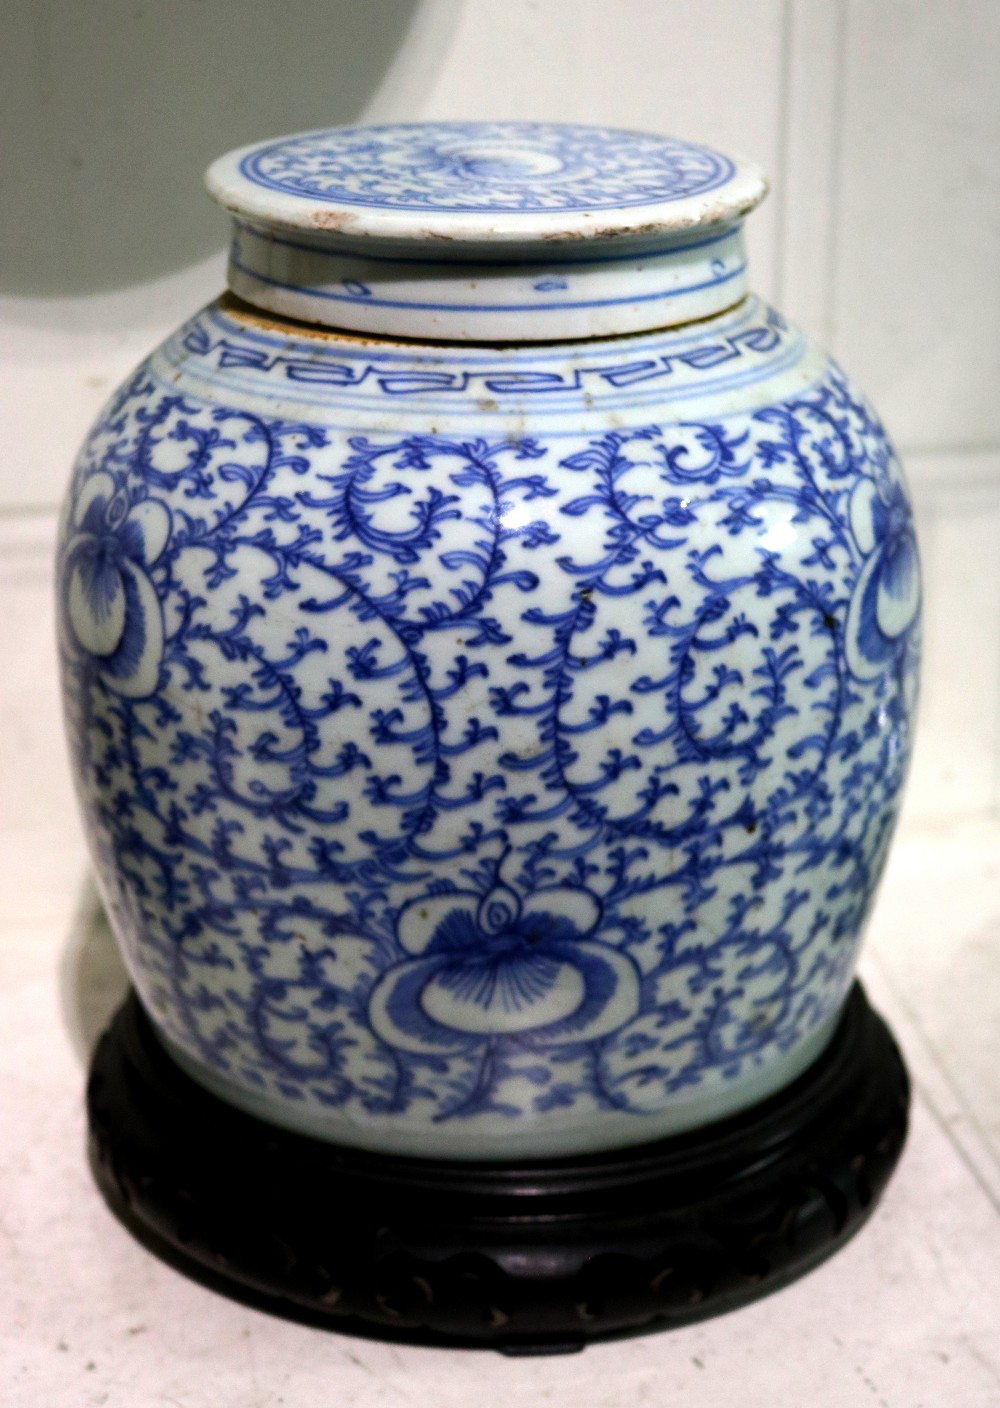 Lot 5083 - Chinese underglazed blue porcelain lidded jar, the rounded body decorated with floral tendrils, with